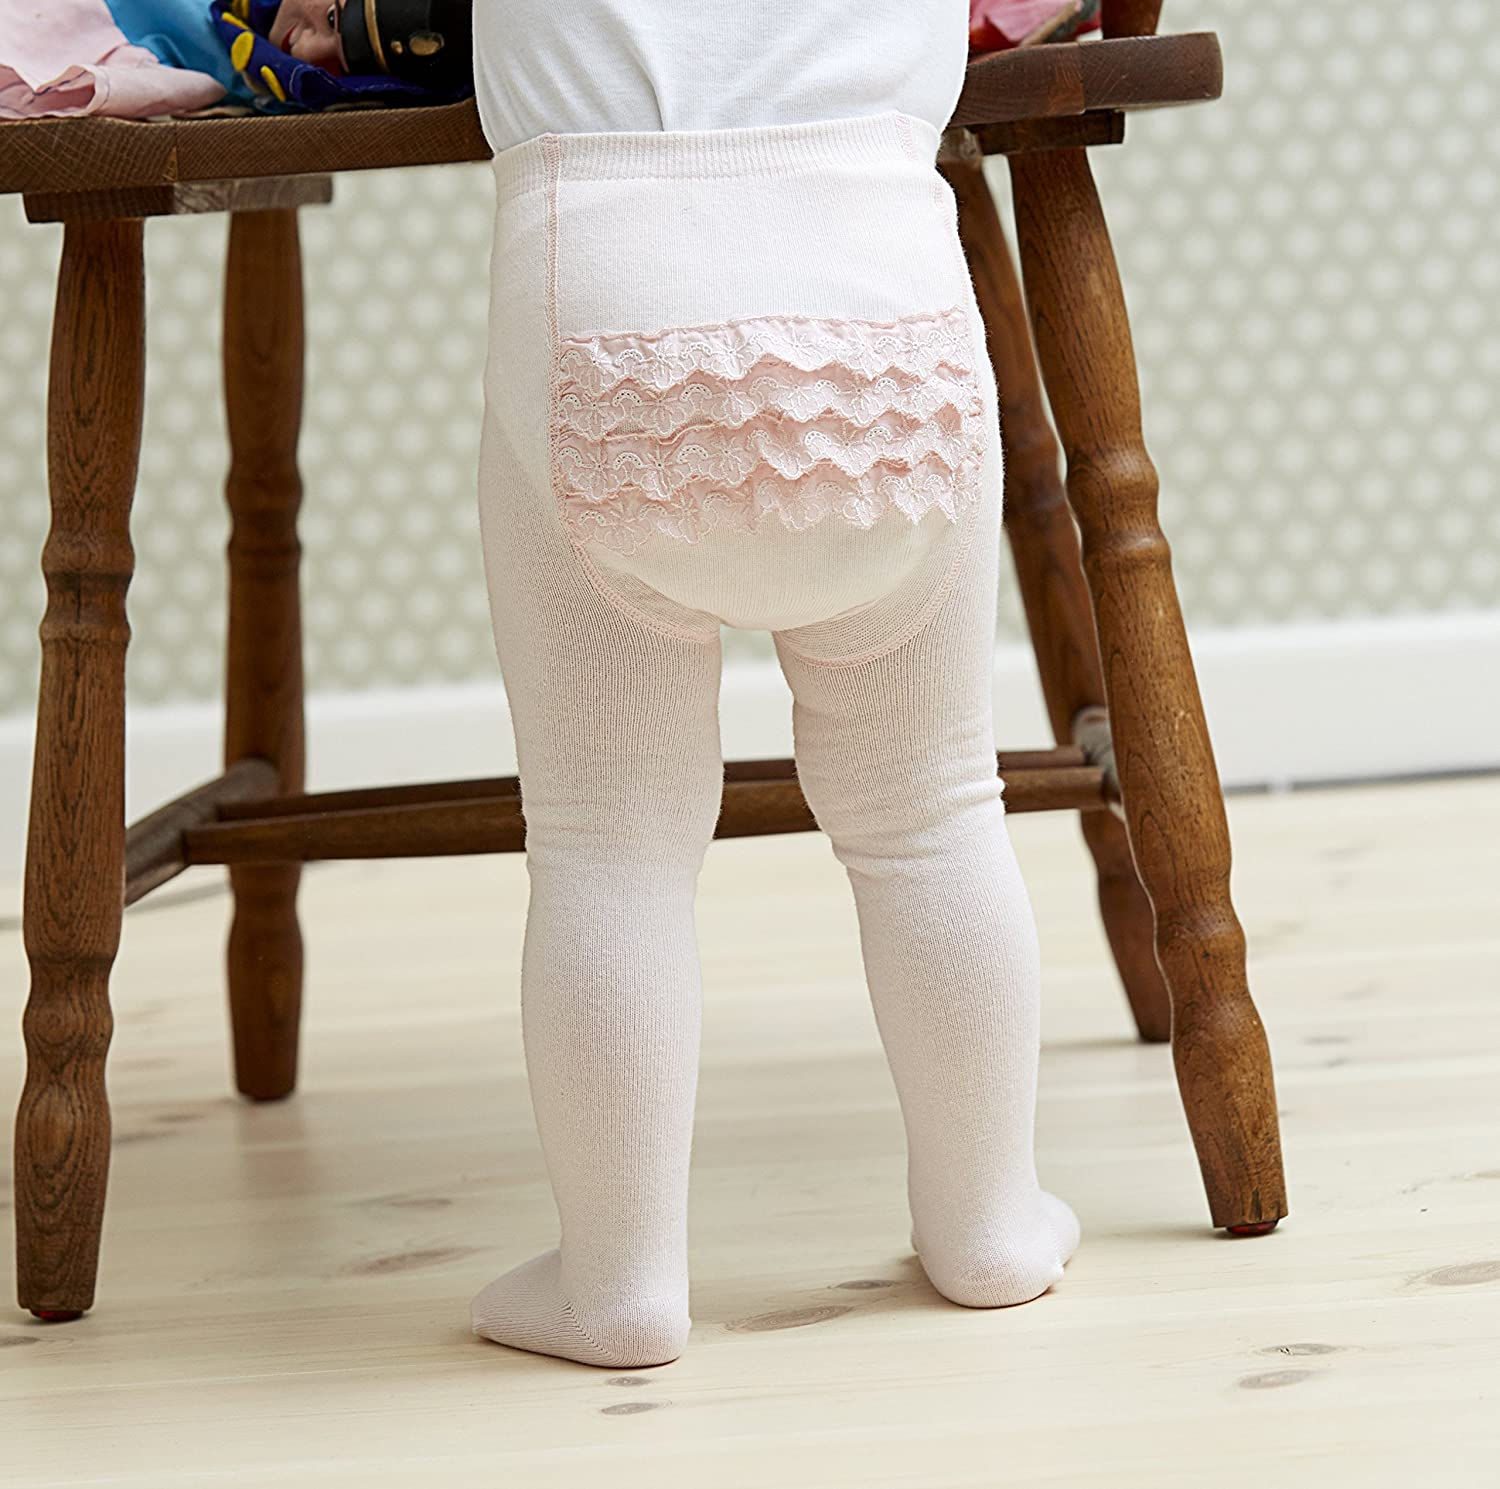 Melton Baby Girl Tights with Ruffles